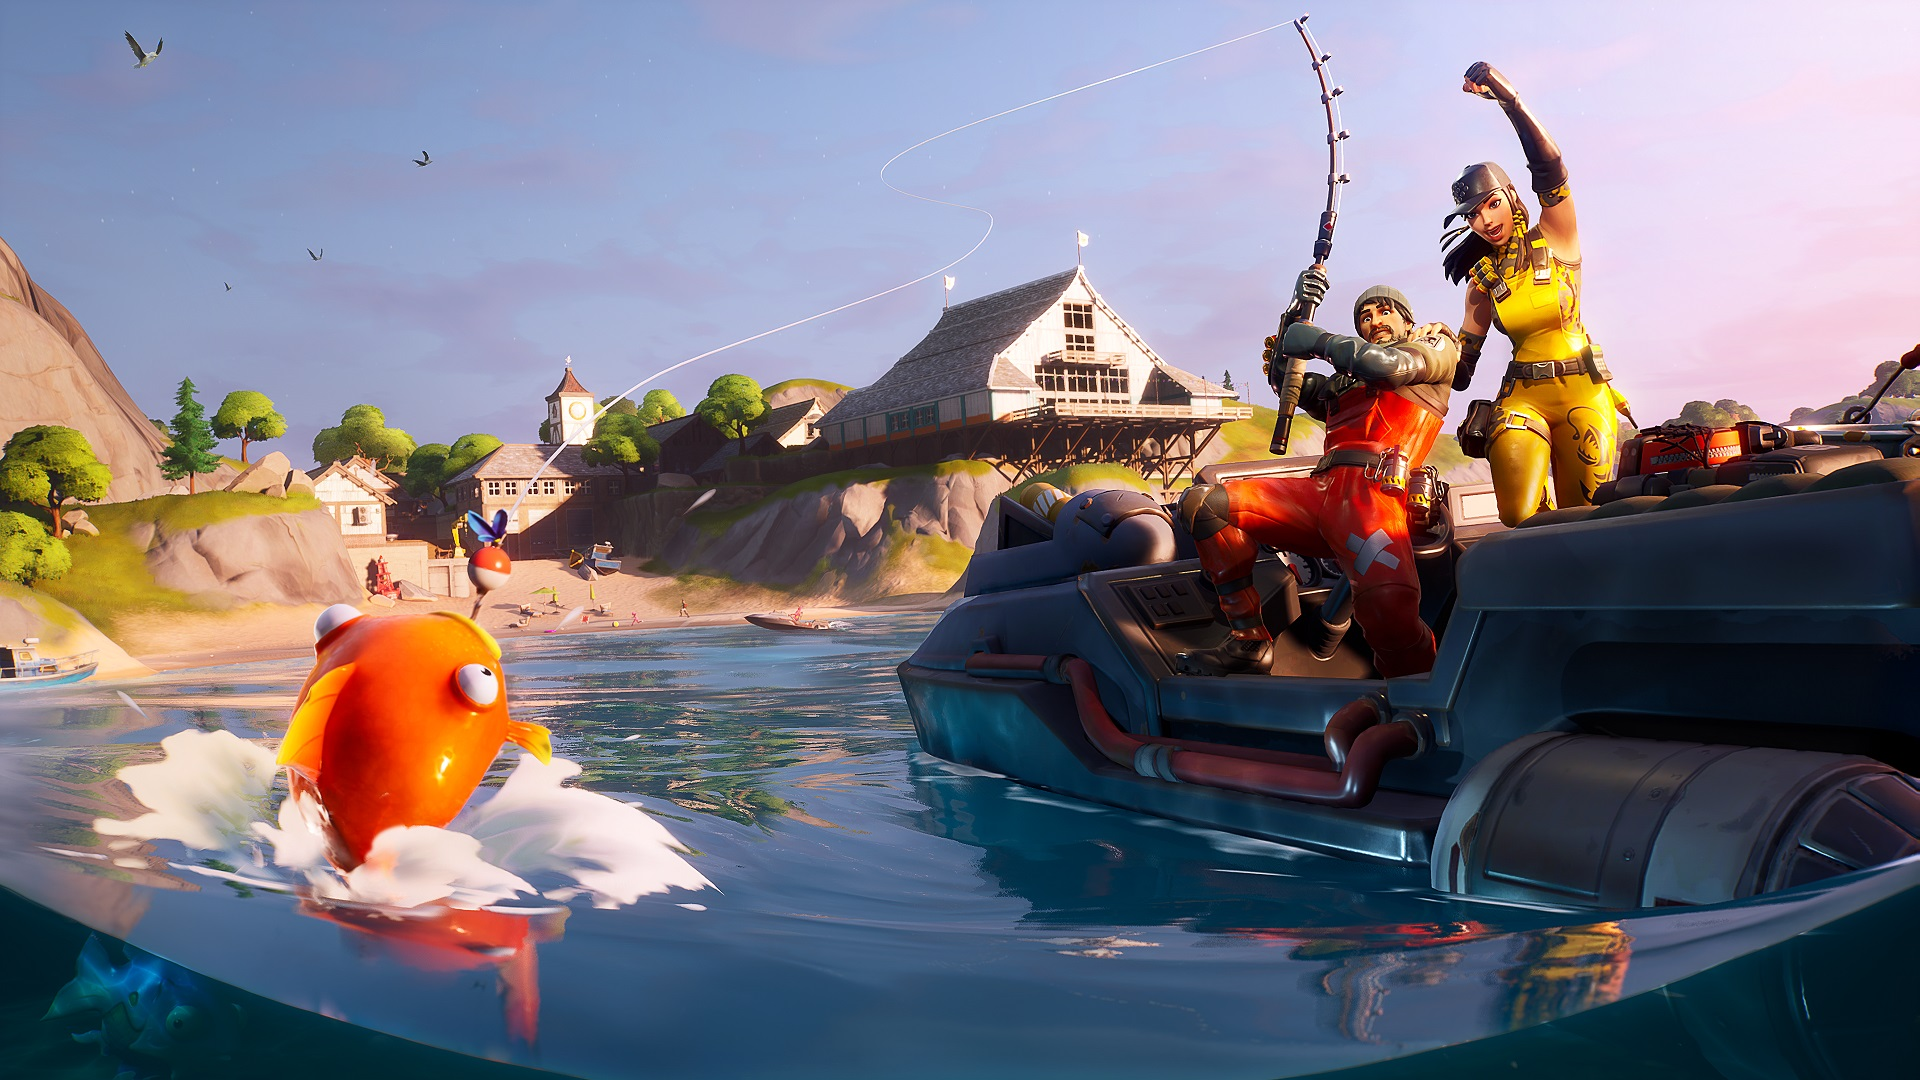 Epic releases Unreal Engine 4.25 with next-gen console support